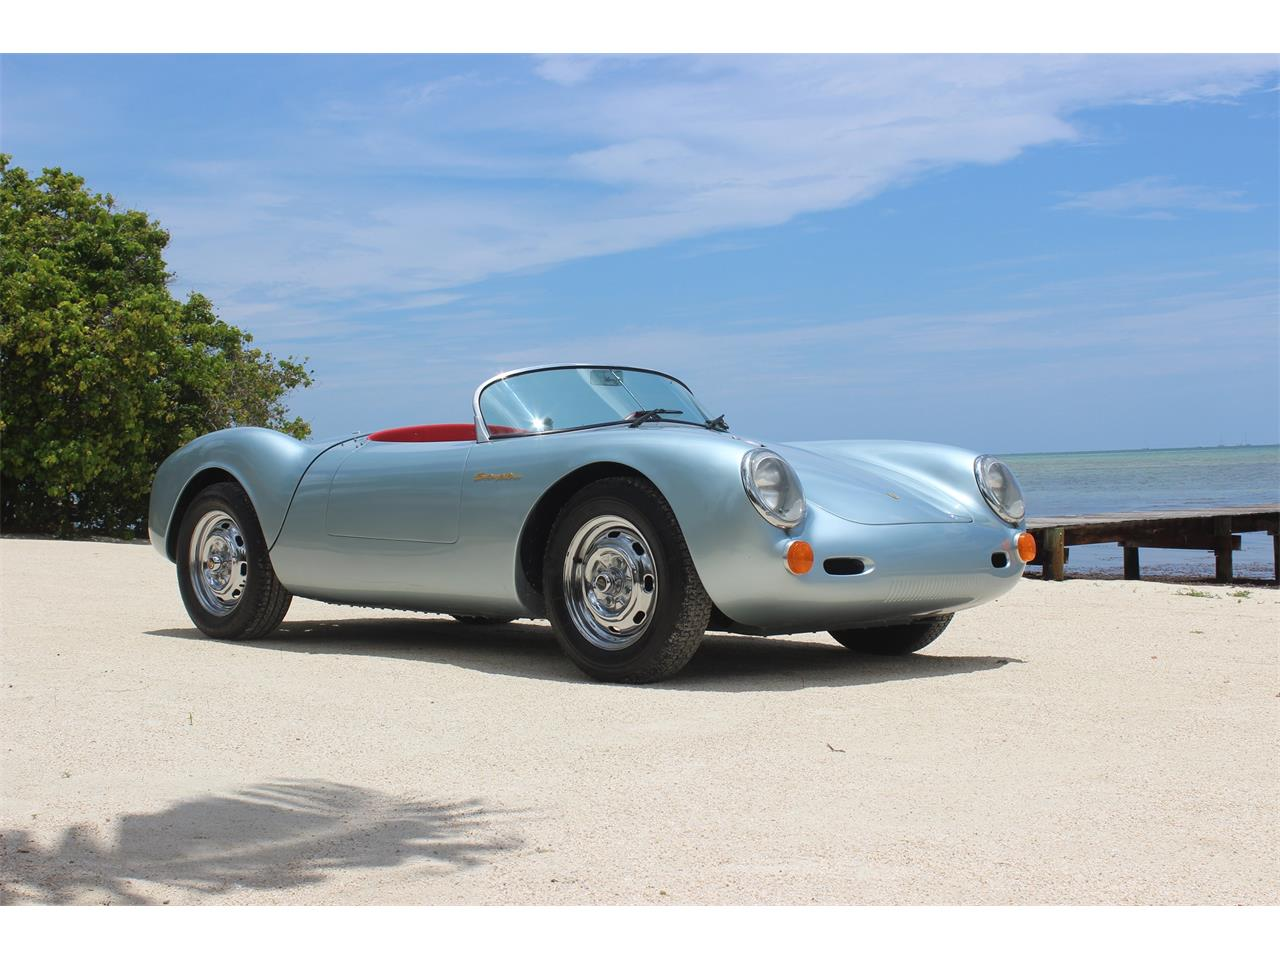 Large Picture of Classic '55 550 Spyder Replica - $32,500.00 Offered by a Private Seller - FC5F